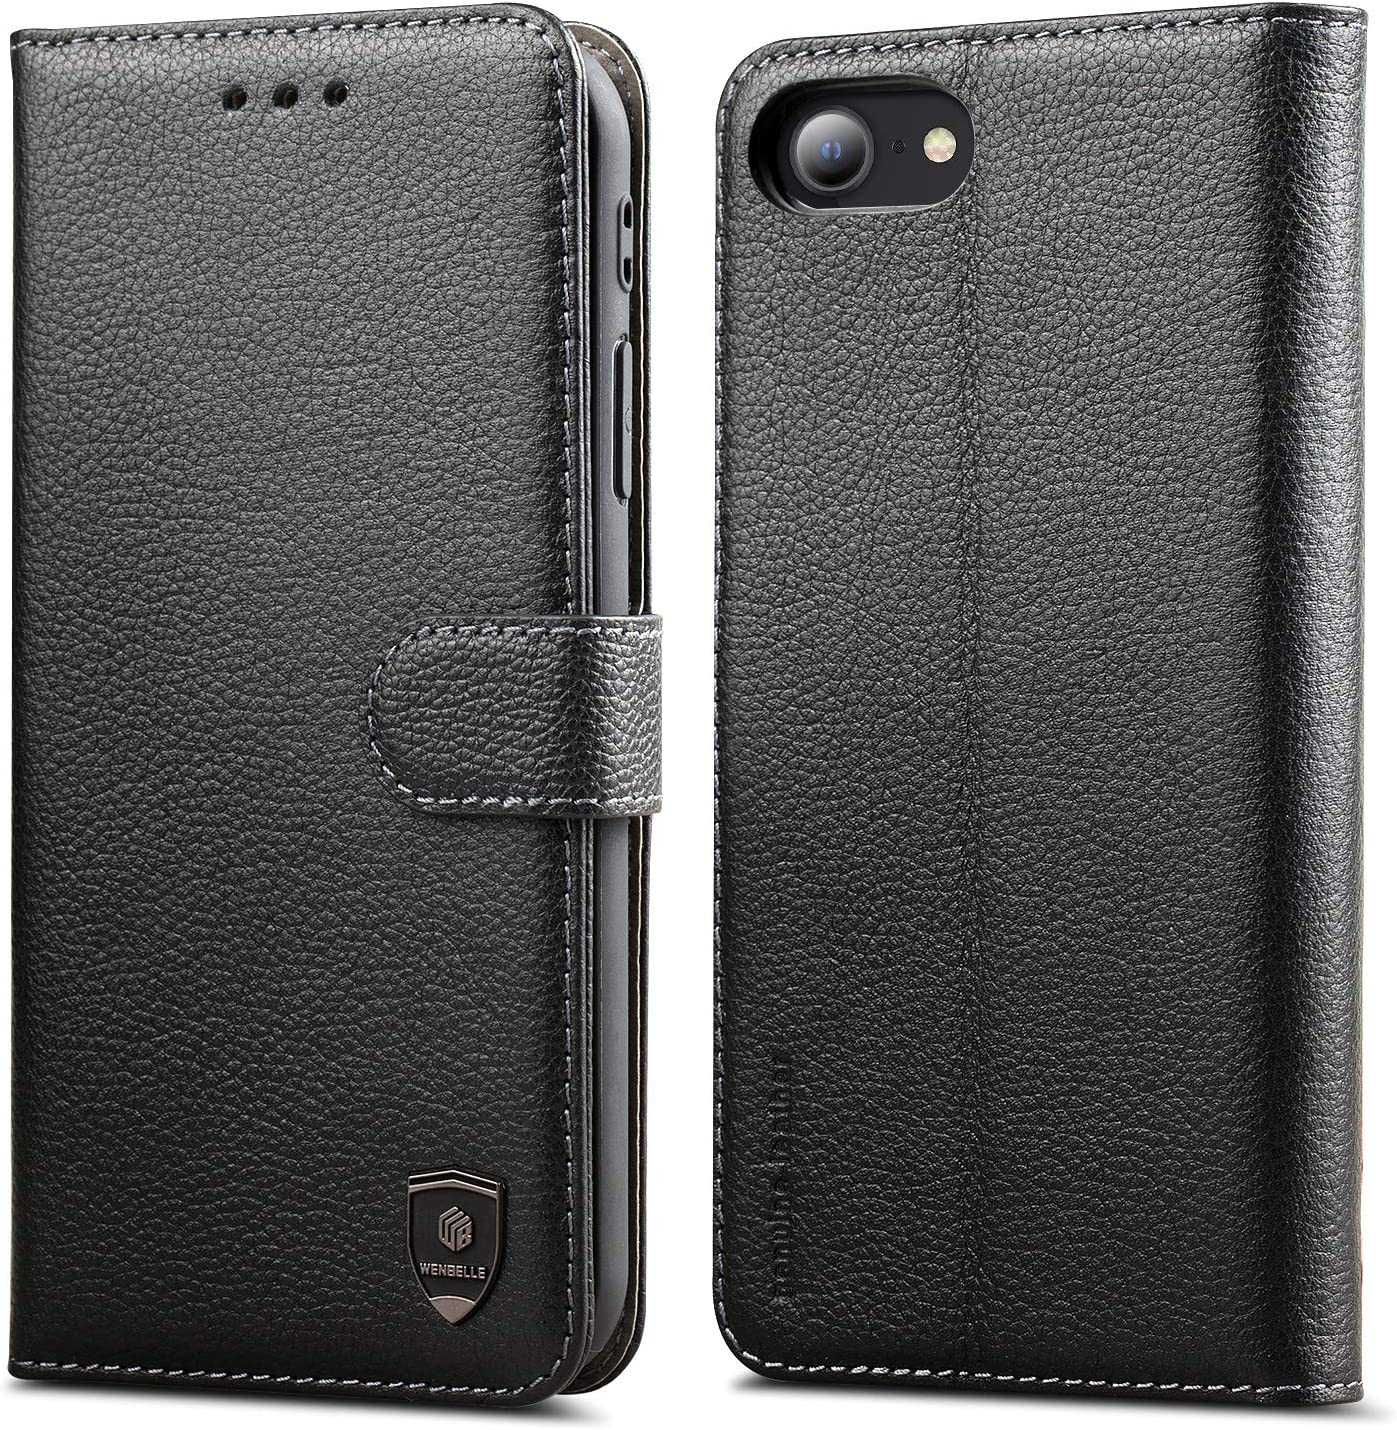 WenBelle for iPhone 7/iPhone 8/iPhone SE (2020 Edition) Case, Genuine Leather Wallet,RFID Blocking Protection,Viewing Stand,TPU Shockproof Flip Cases for Apple 7/8/SE 2nd Generation(4.7 inch) (Black)